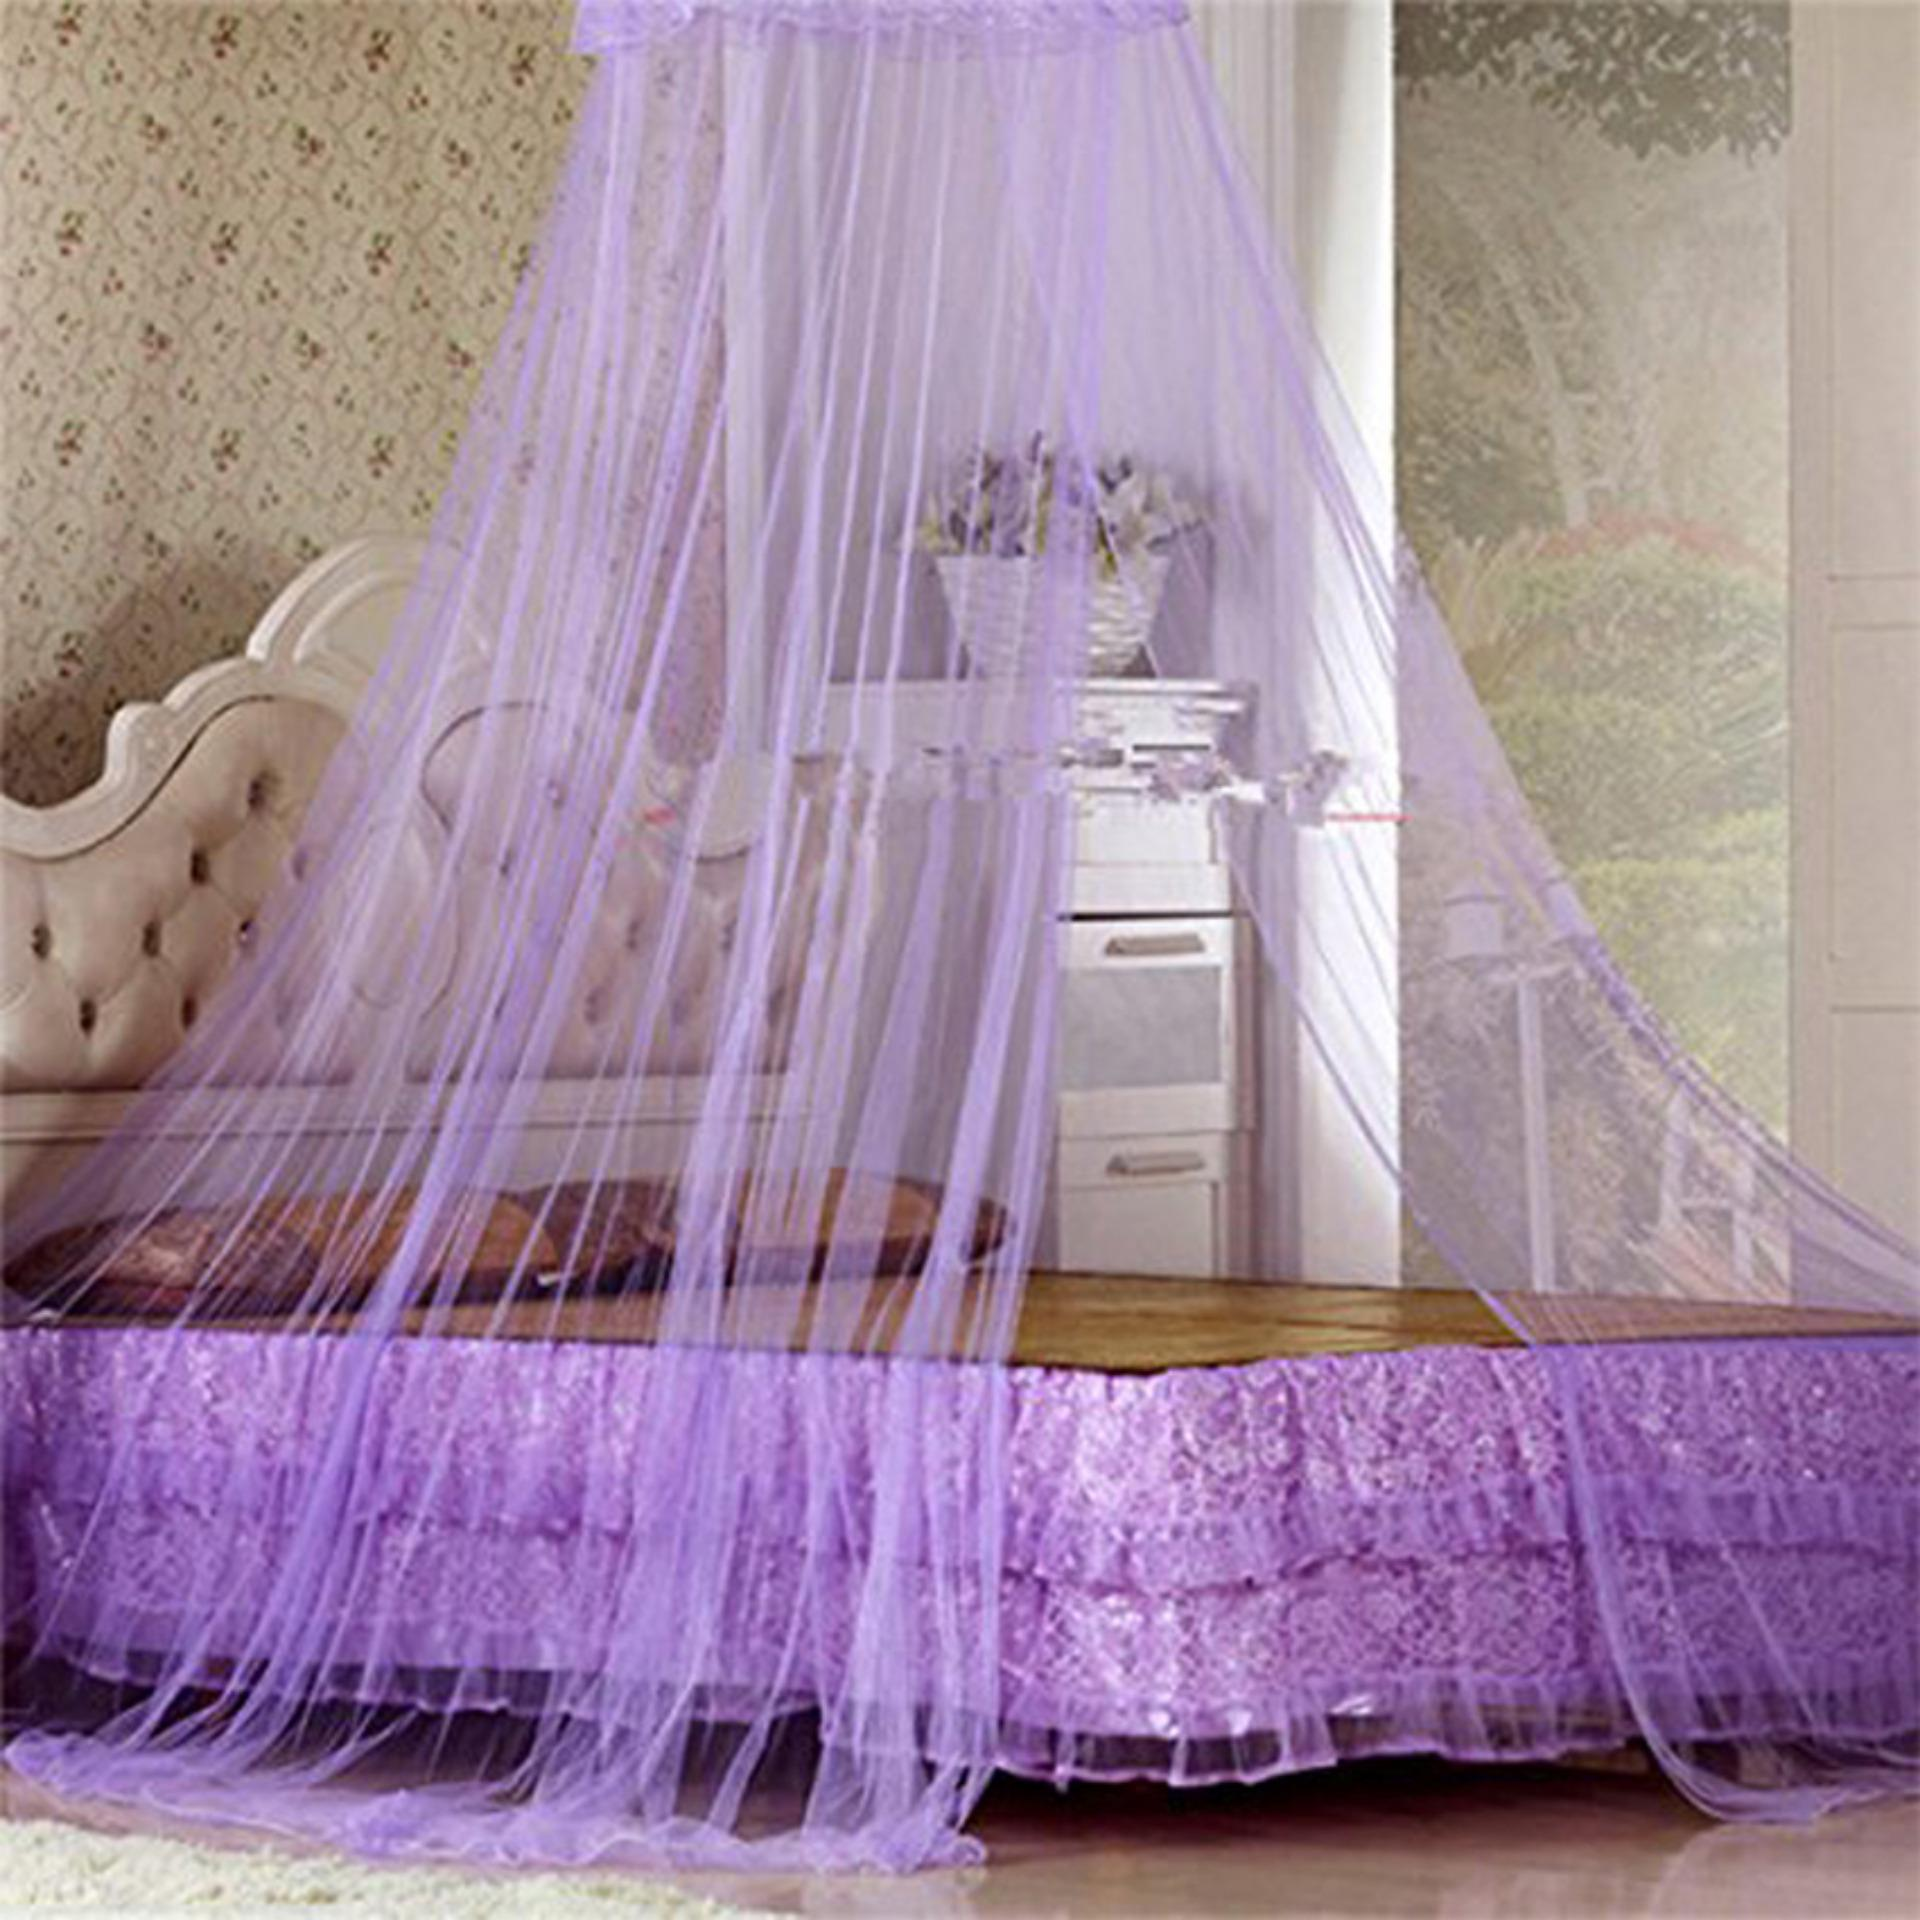 ... SNS Mosquito Net Bed Canopy King/Queen Size (Violet) with AntiMosquito Pest Insect ... & Philippines | SNS Mosquito Net Bed Canopy King/Queen Size (Violet ...